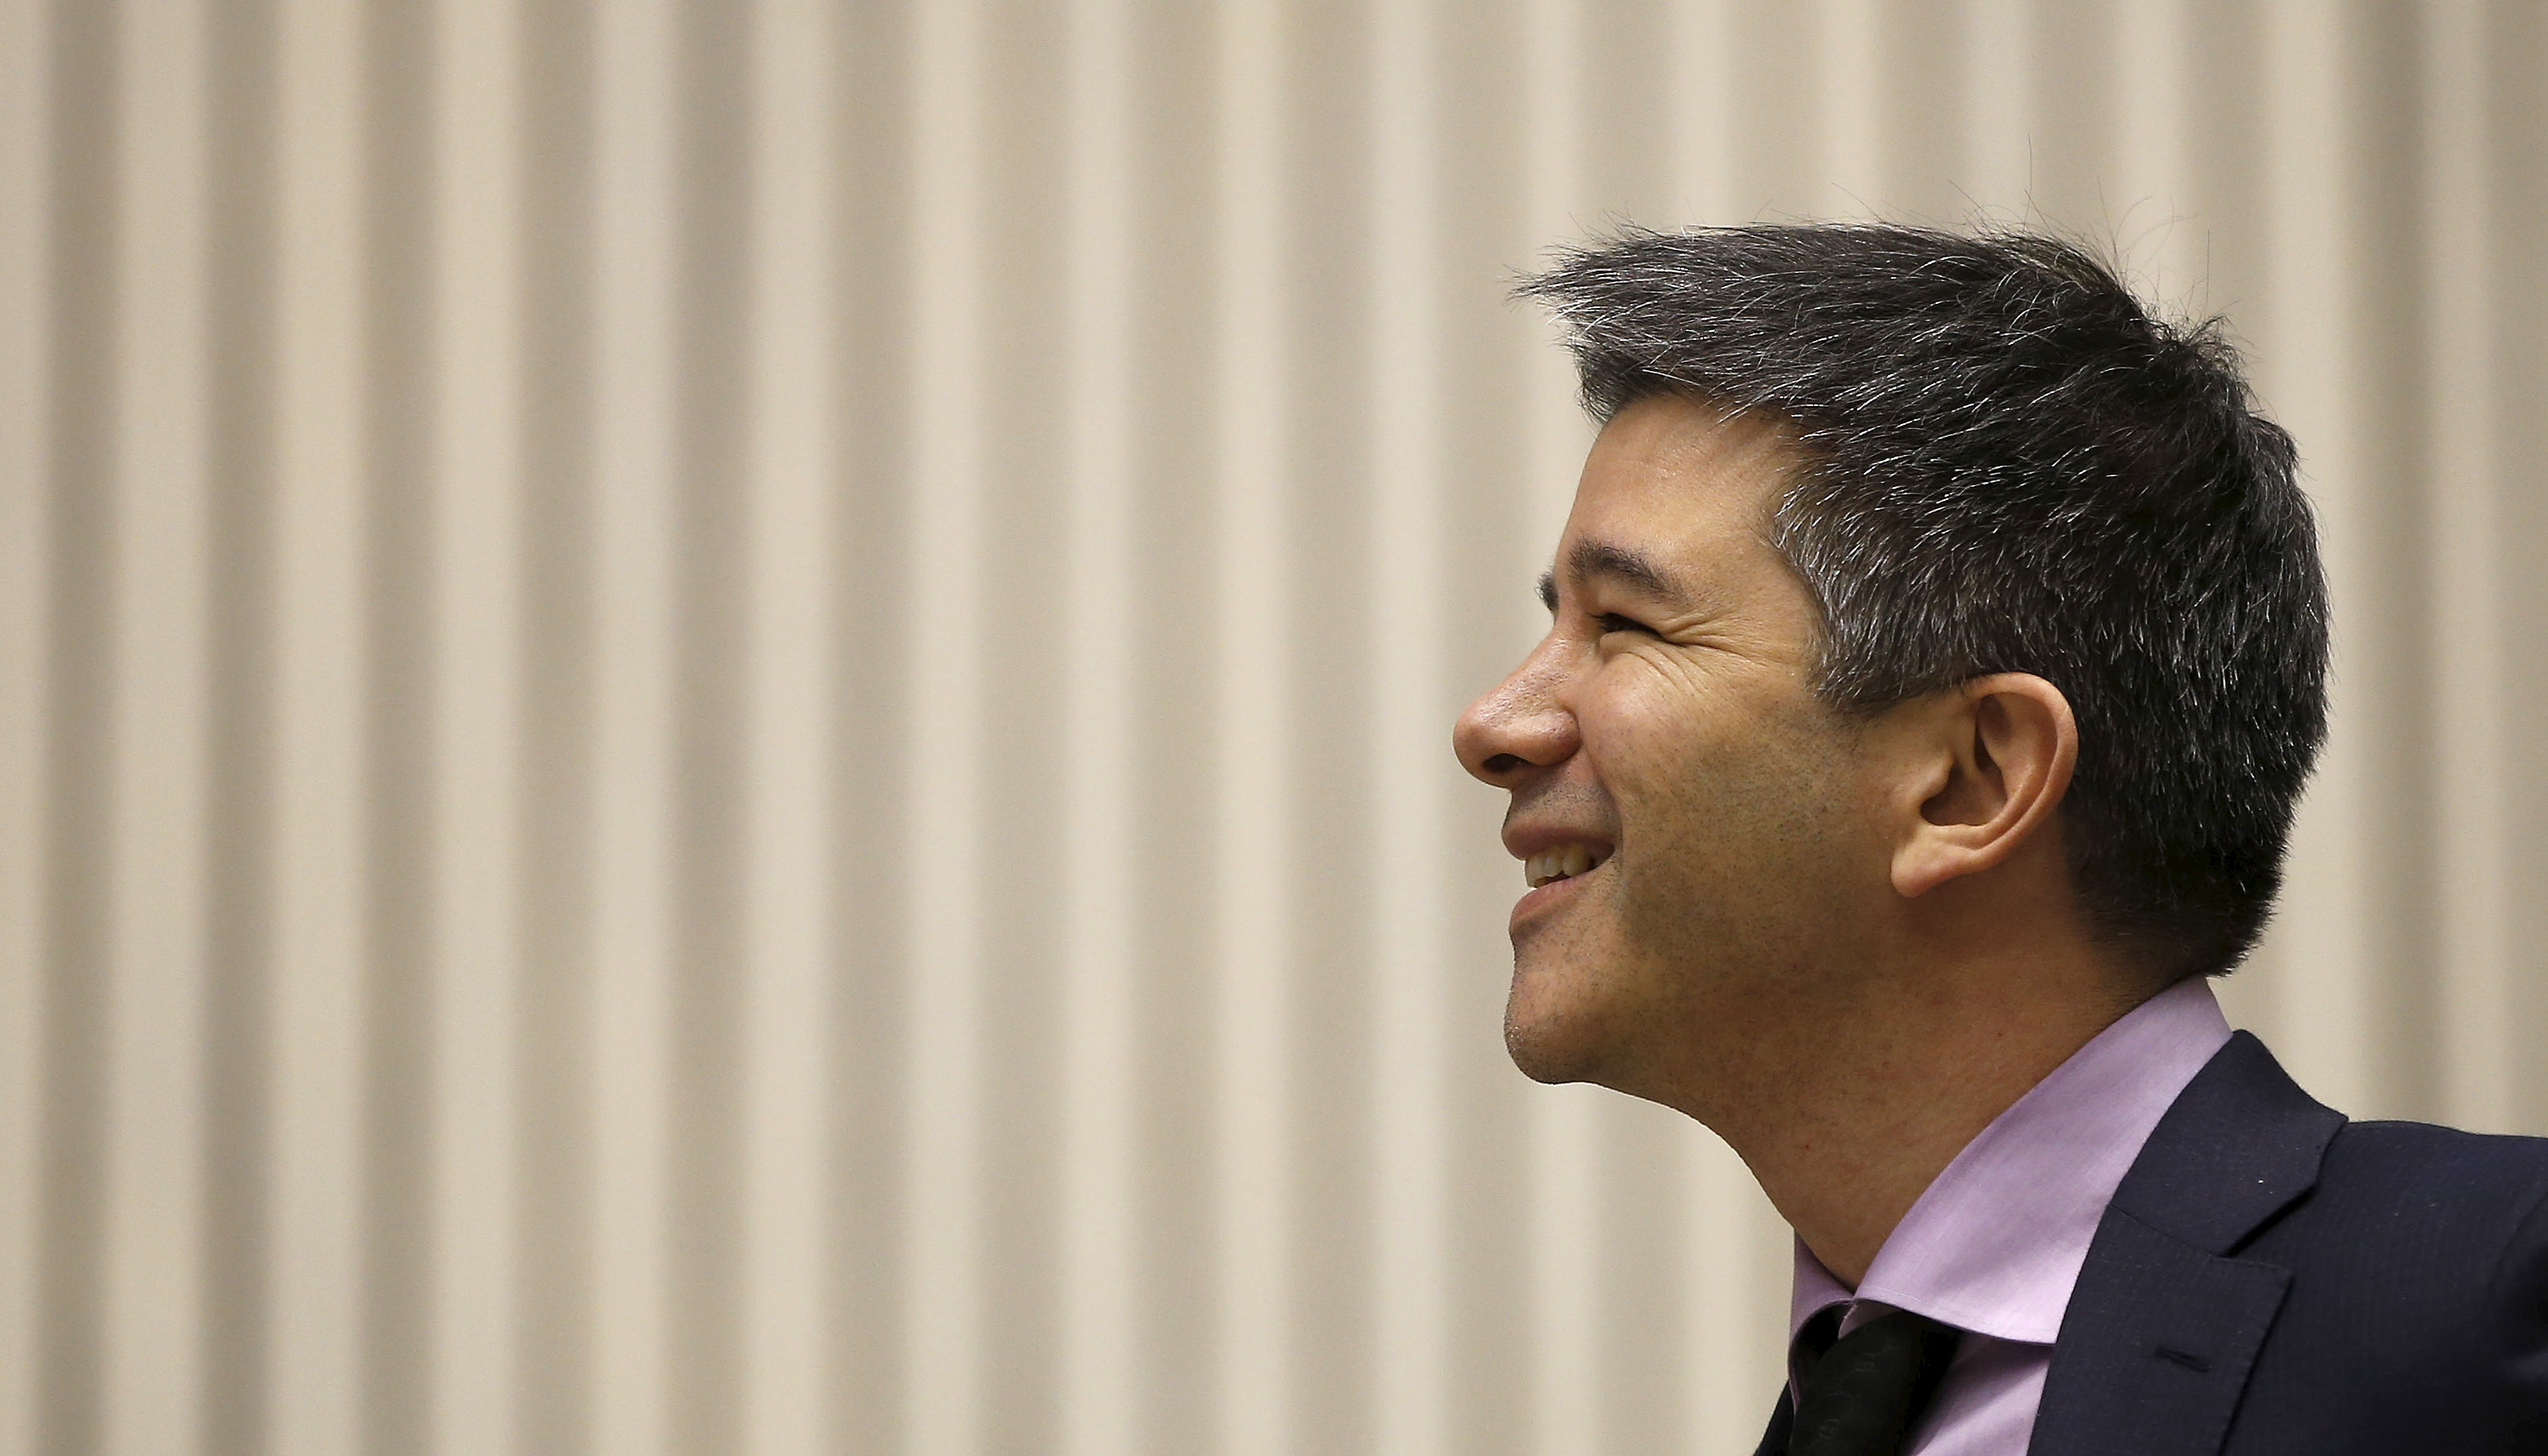 Uber CEO Travis Kalanick smiles as he addresses a gathering during a conference of start-up businesses conference in New Delhi, India,